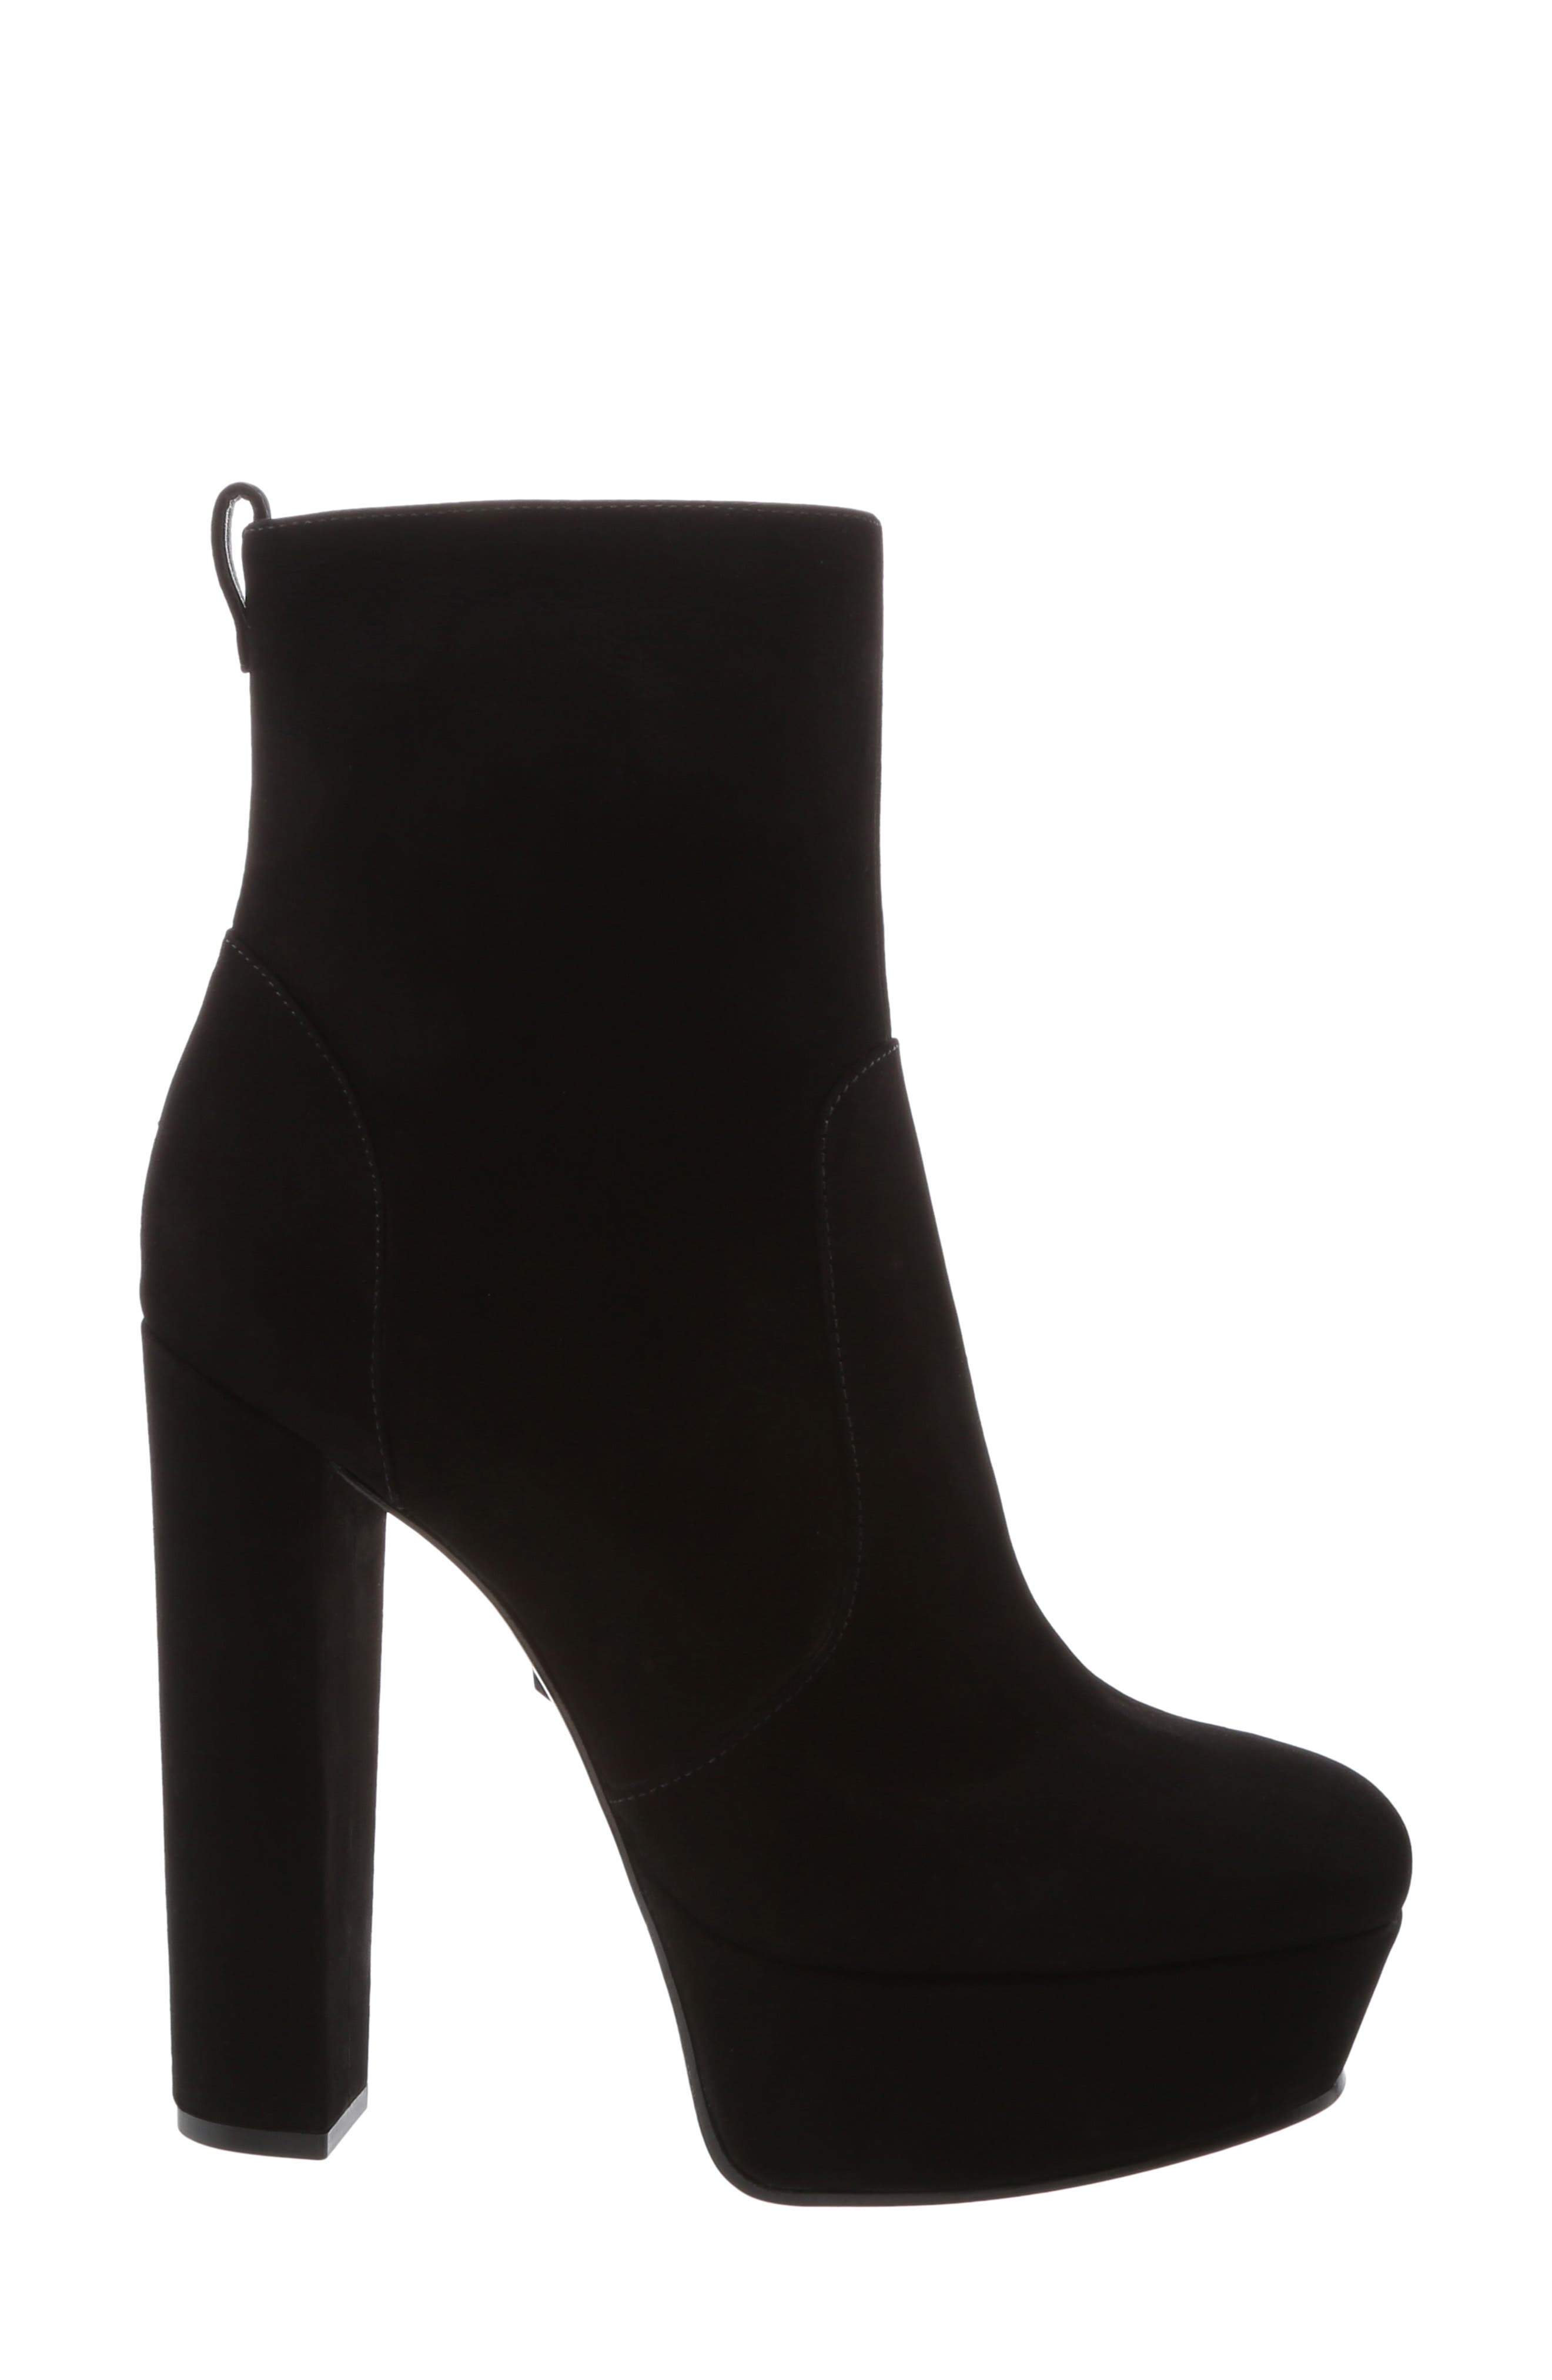 July Platform Bootie,                             Alternate thumbnail 3, color,                             BLACK NUBUCK LEATHER